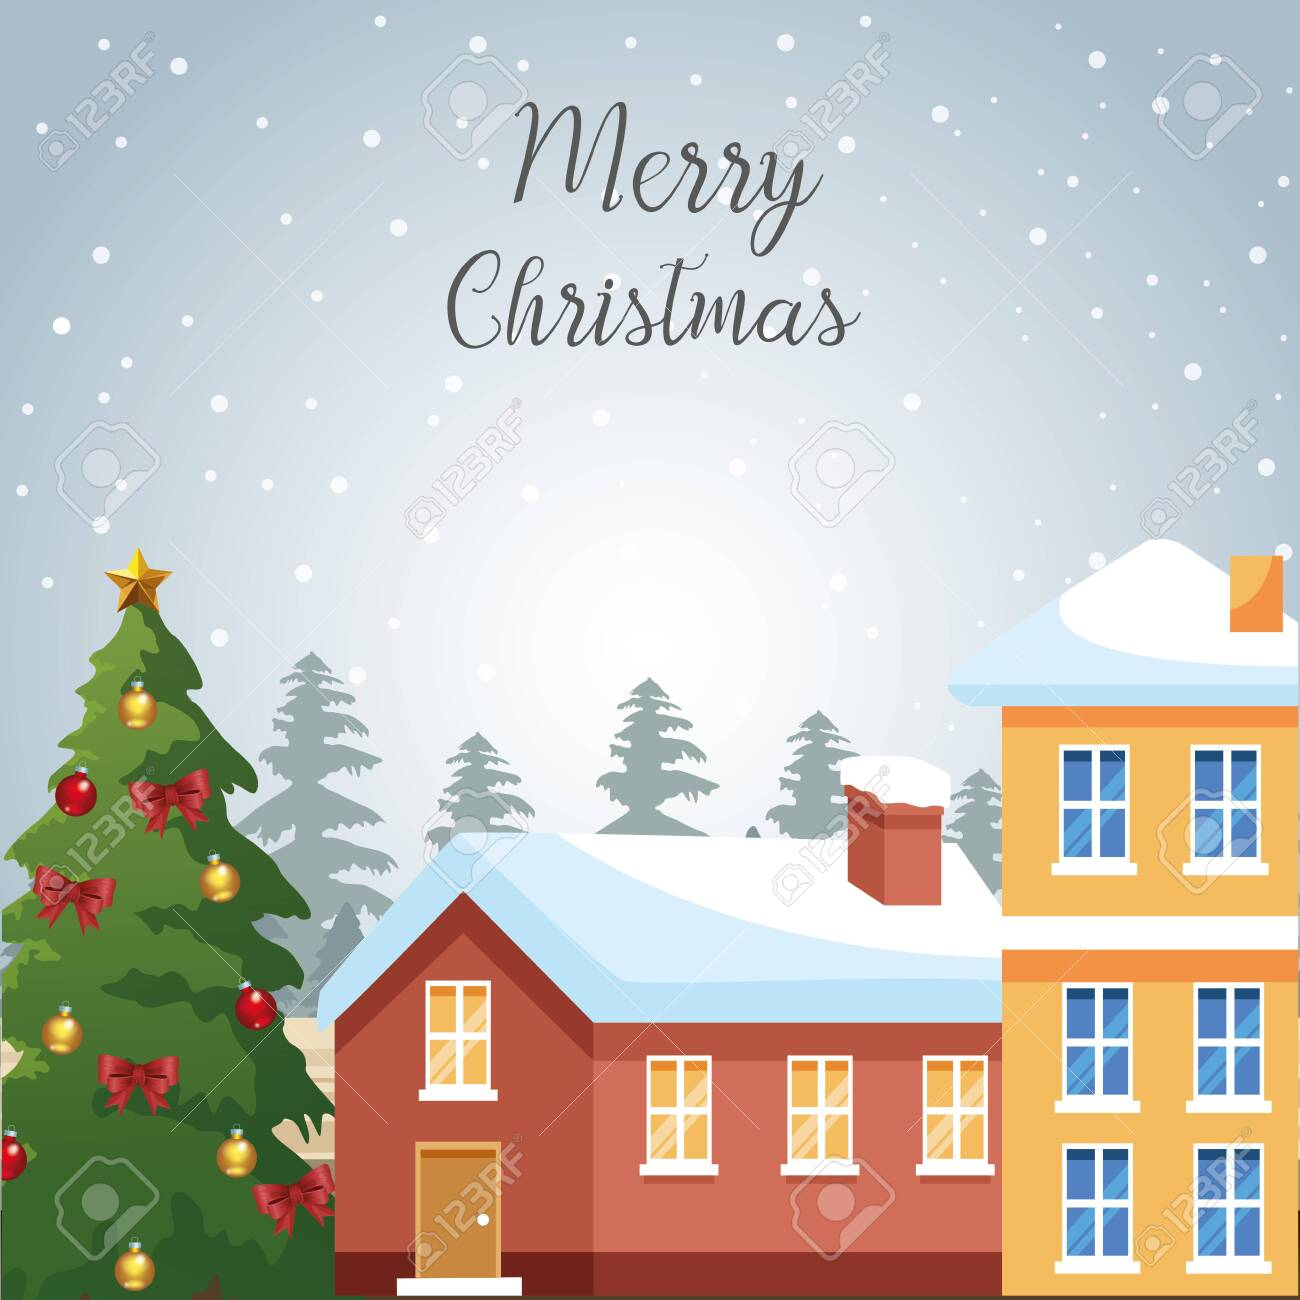 Merry christmas design with houses and christmas tree with ornaments over snowy background, colorful design , vector illustration - 136128438